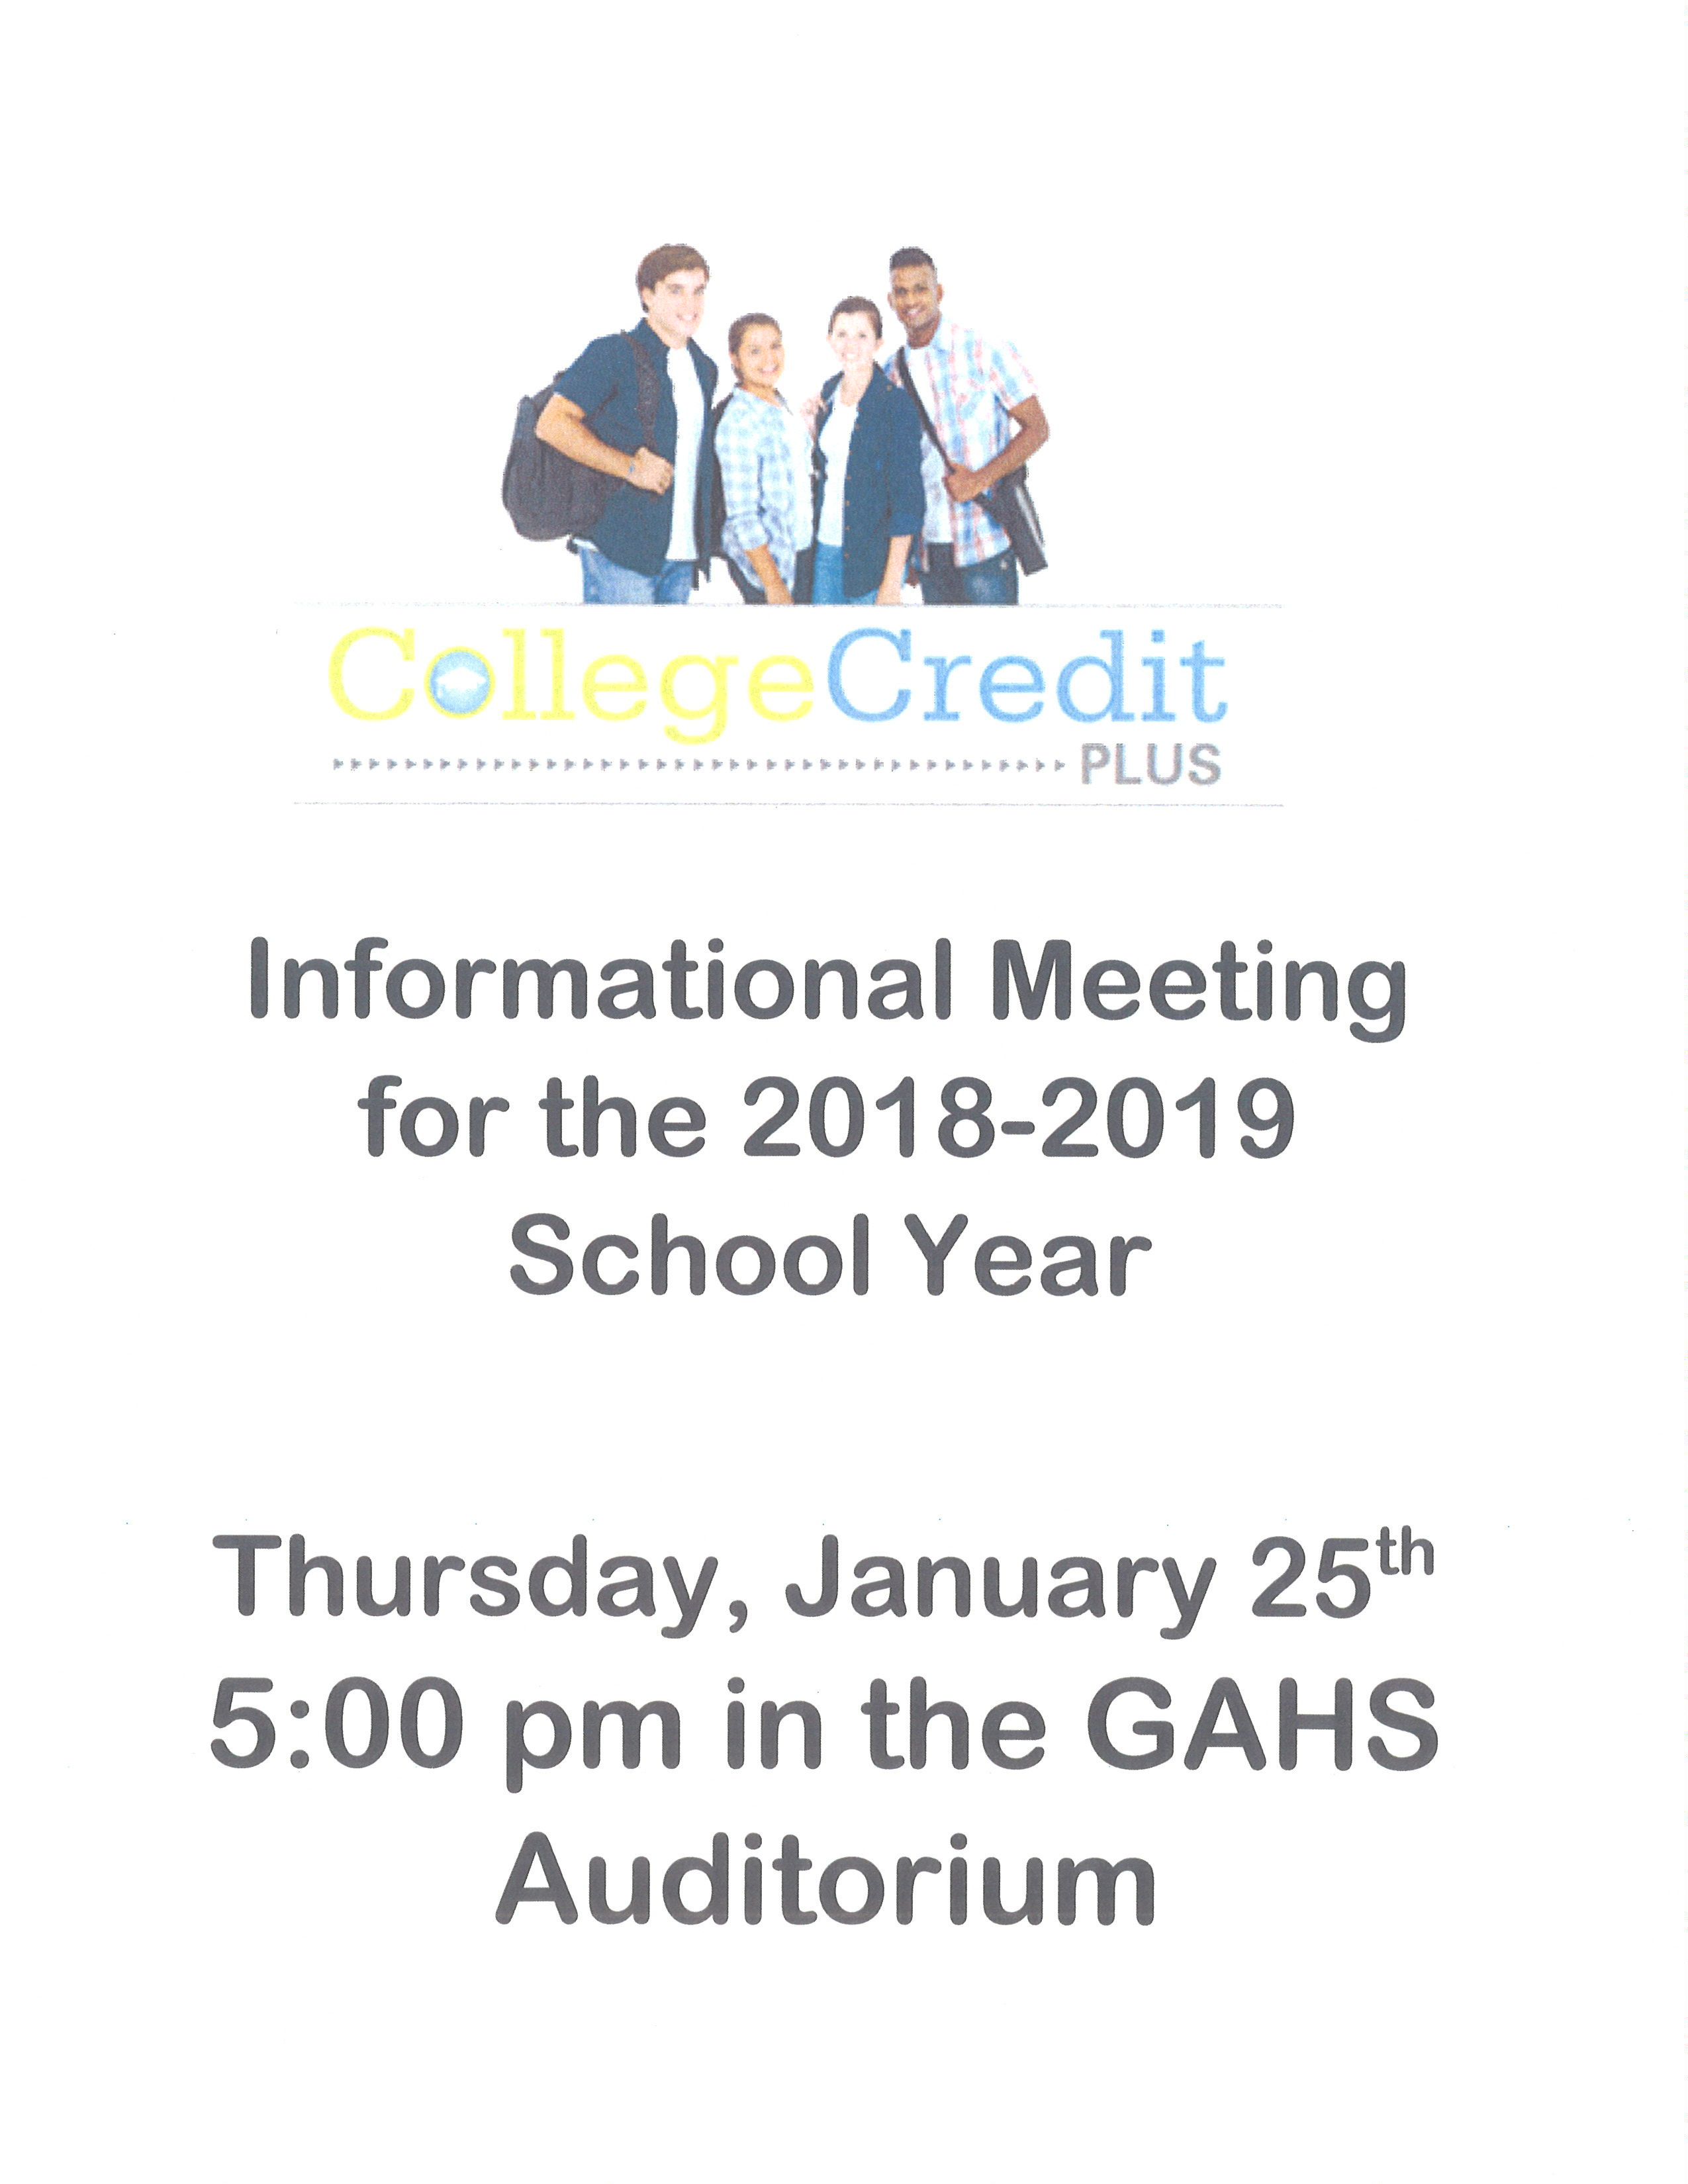 Thursday, January 25th @ 5:00